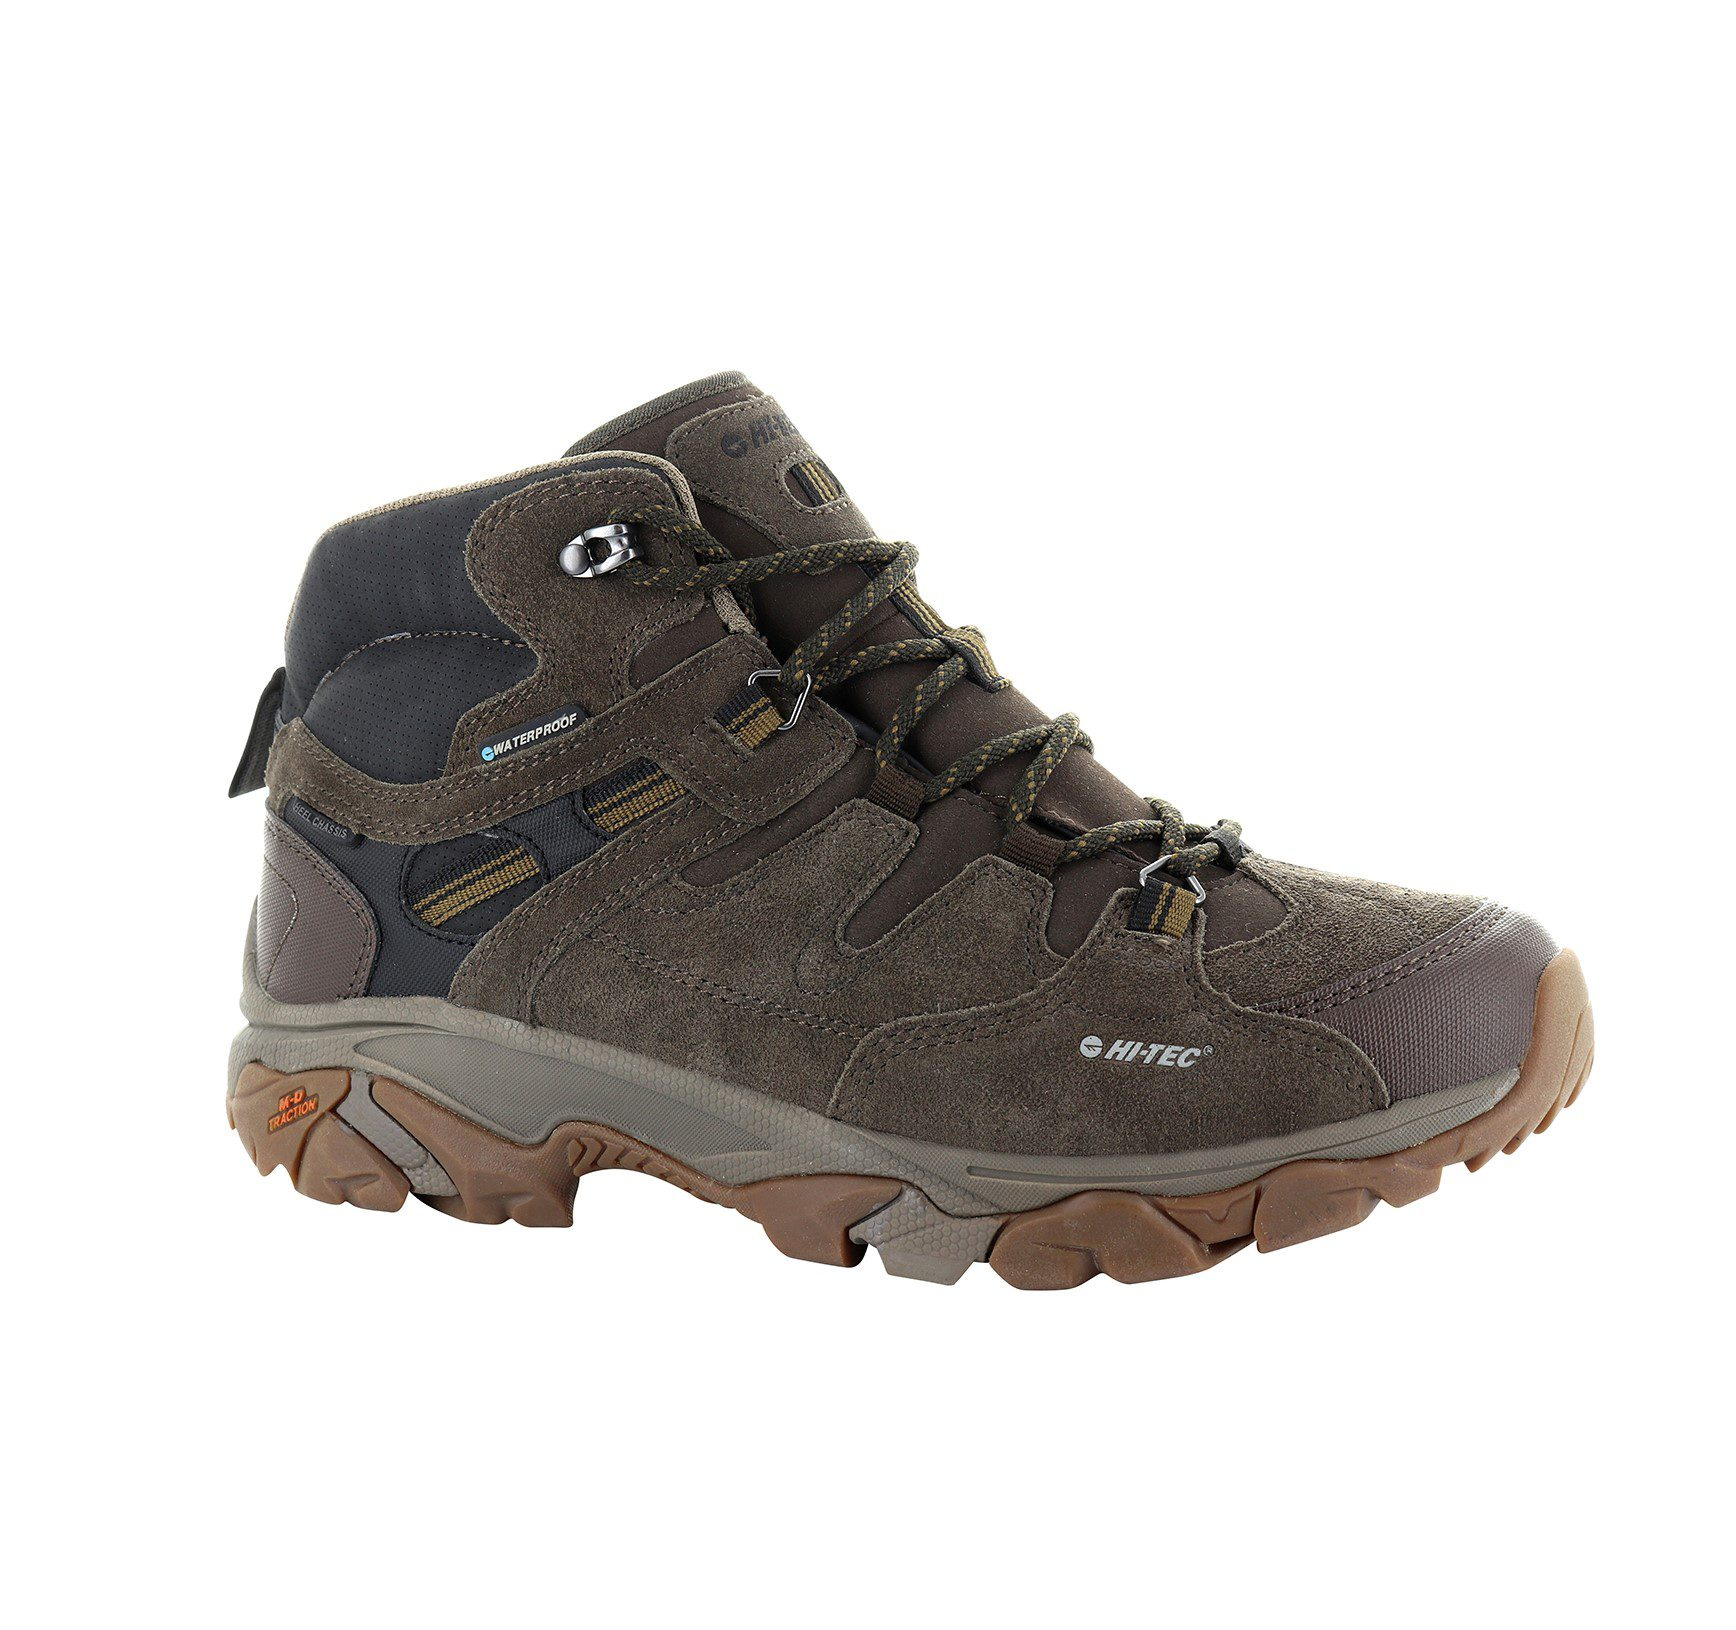 Hi-Tec Ravus Adventure Mens - Chocolate - Tan